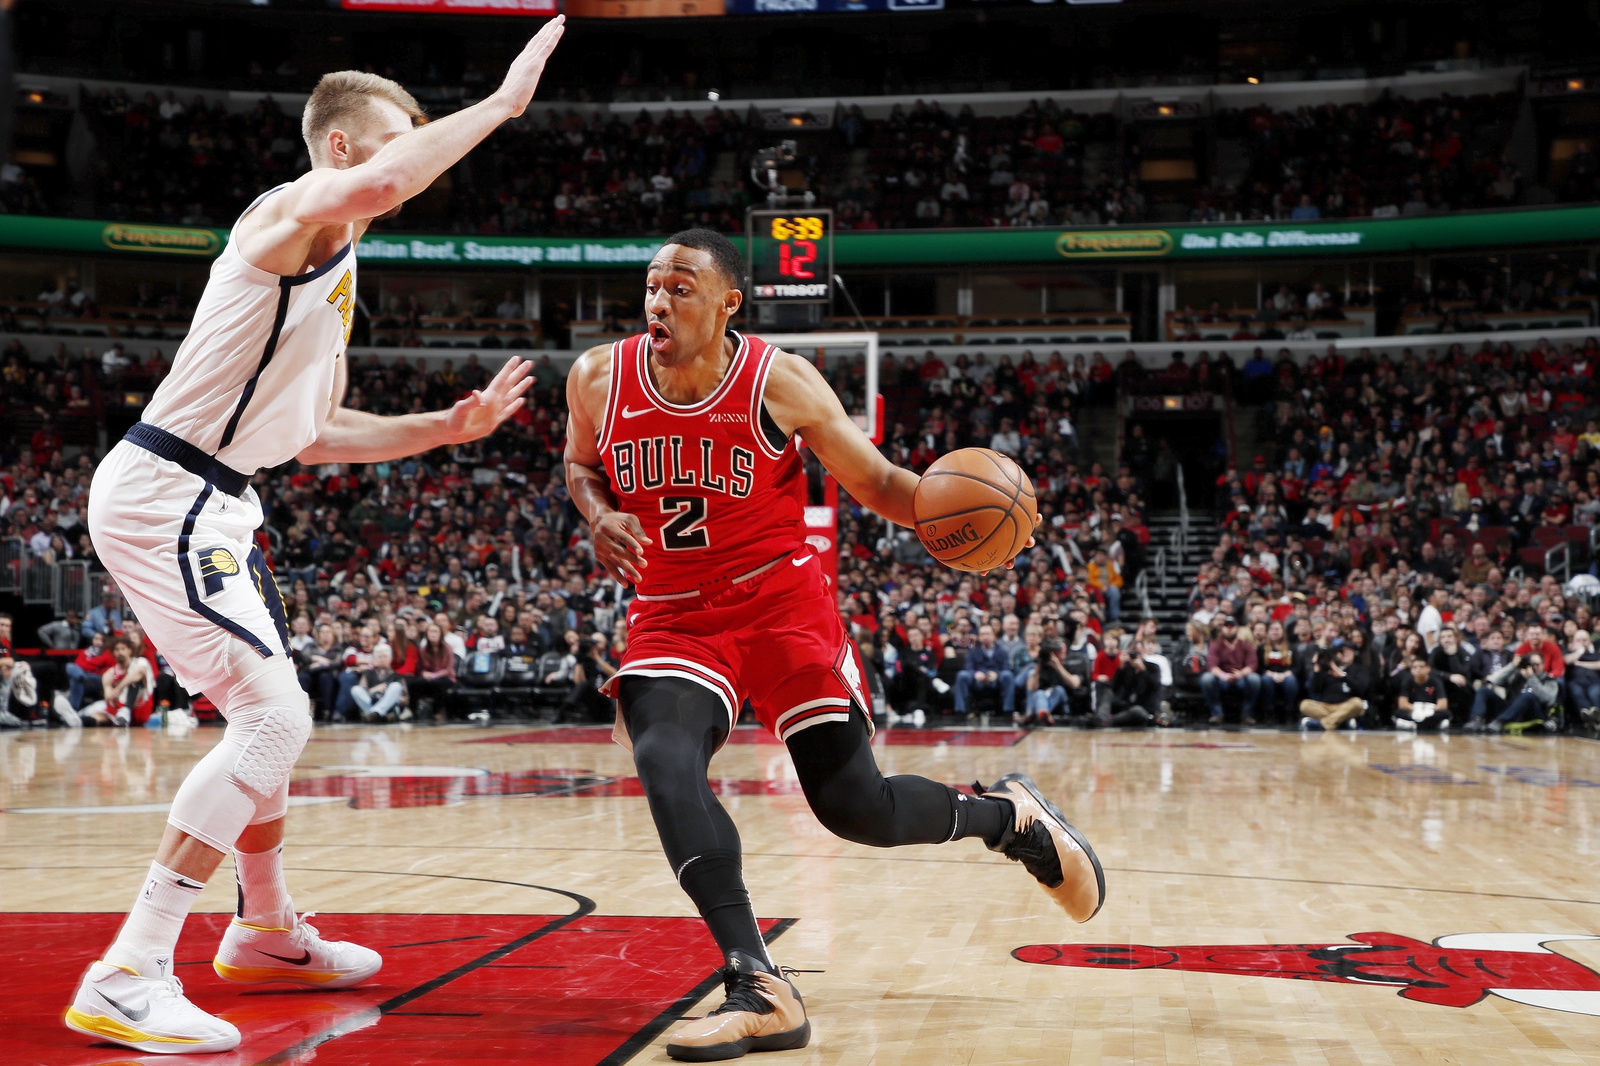 Jabari Parker #2 of the Chicago Bulls drives to the basket against the Indiana Pacers on January 4, 2019 at United Center in Chicago, Illinois.